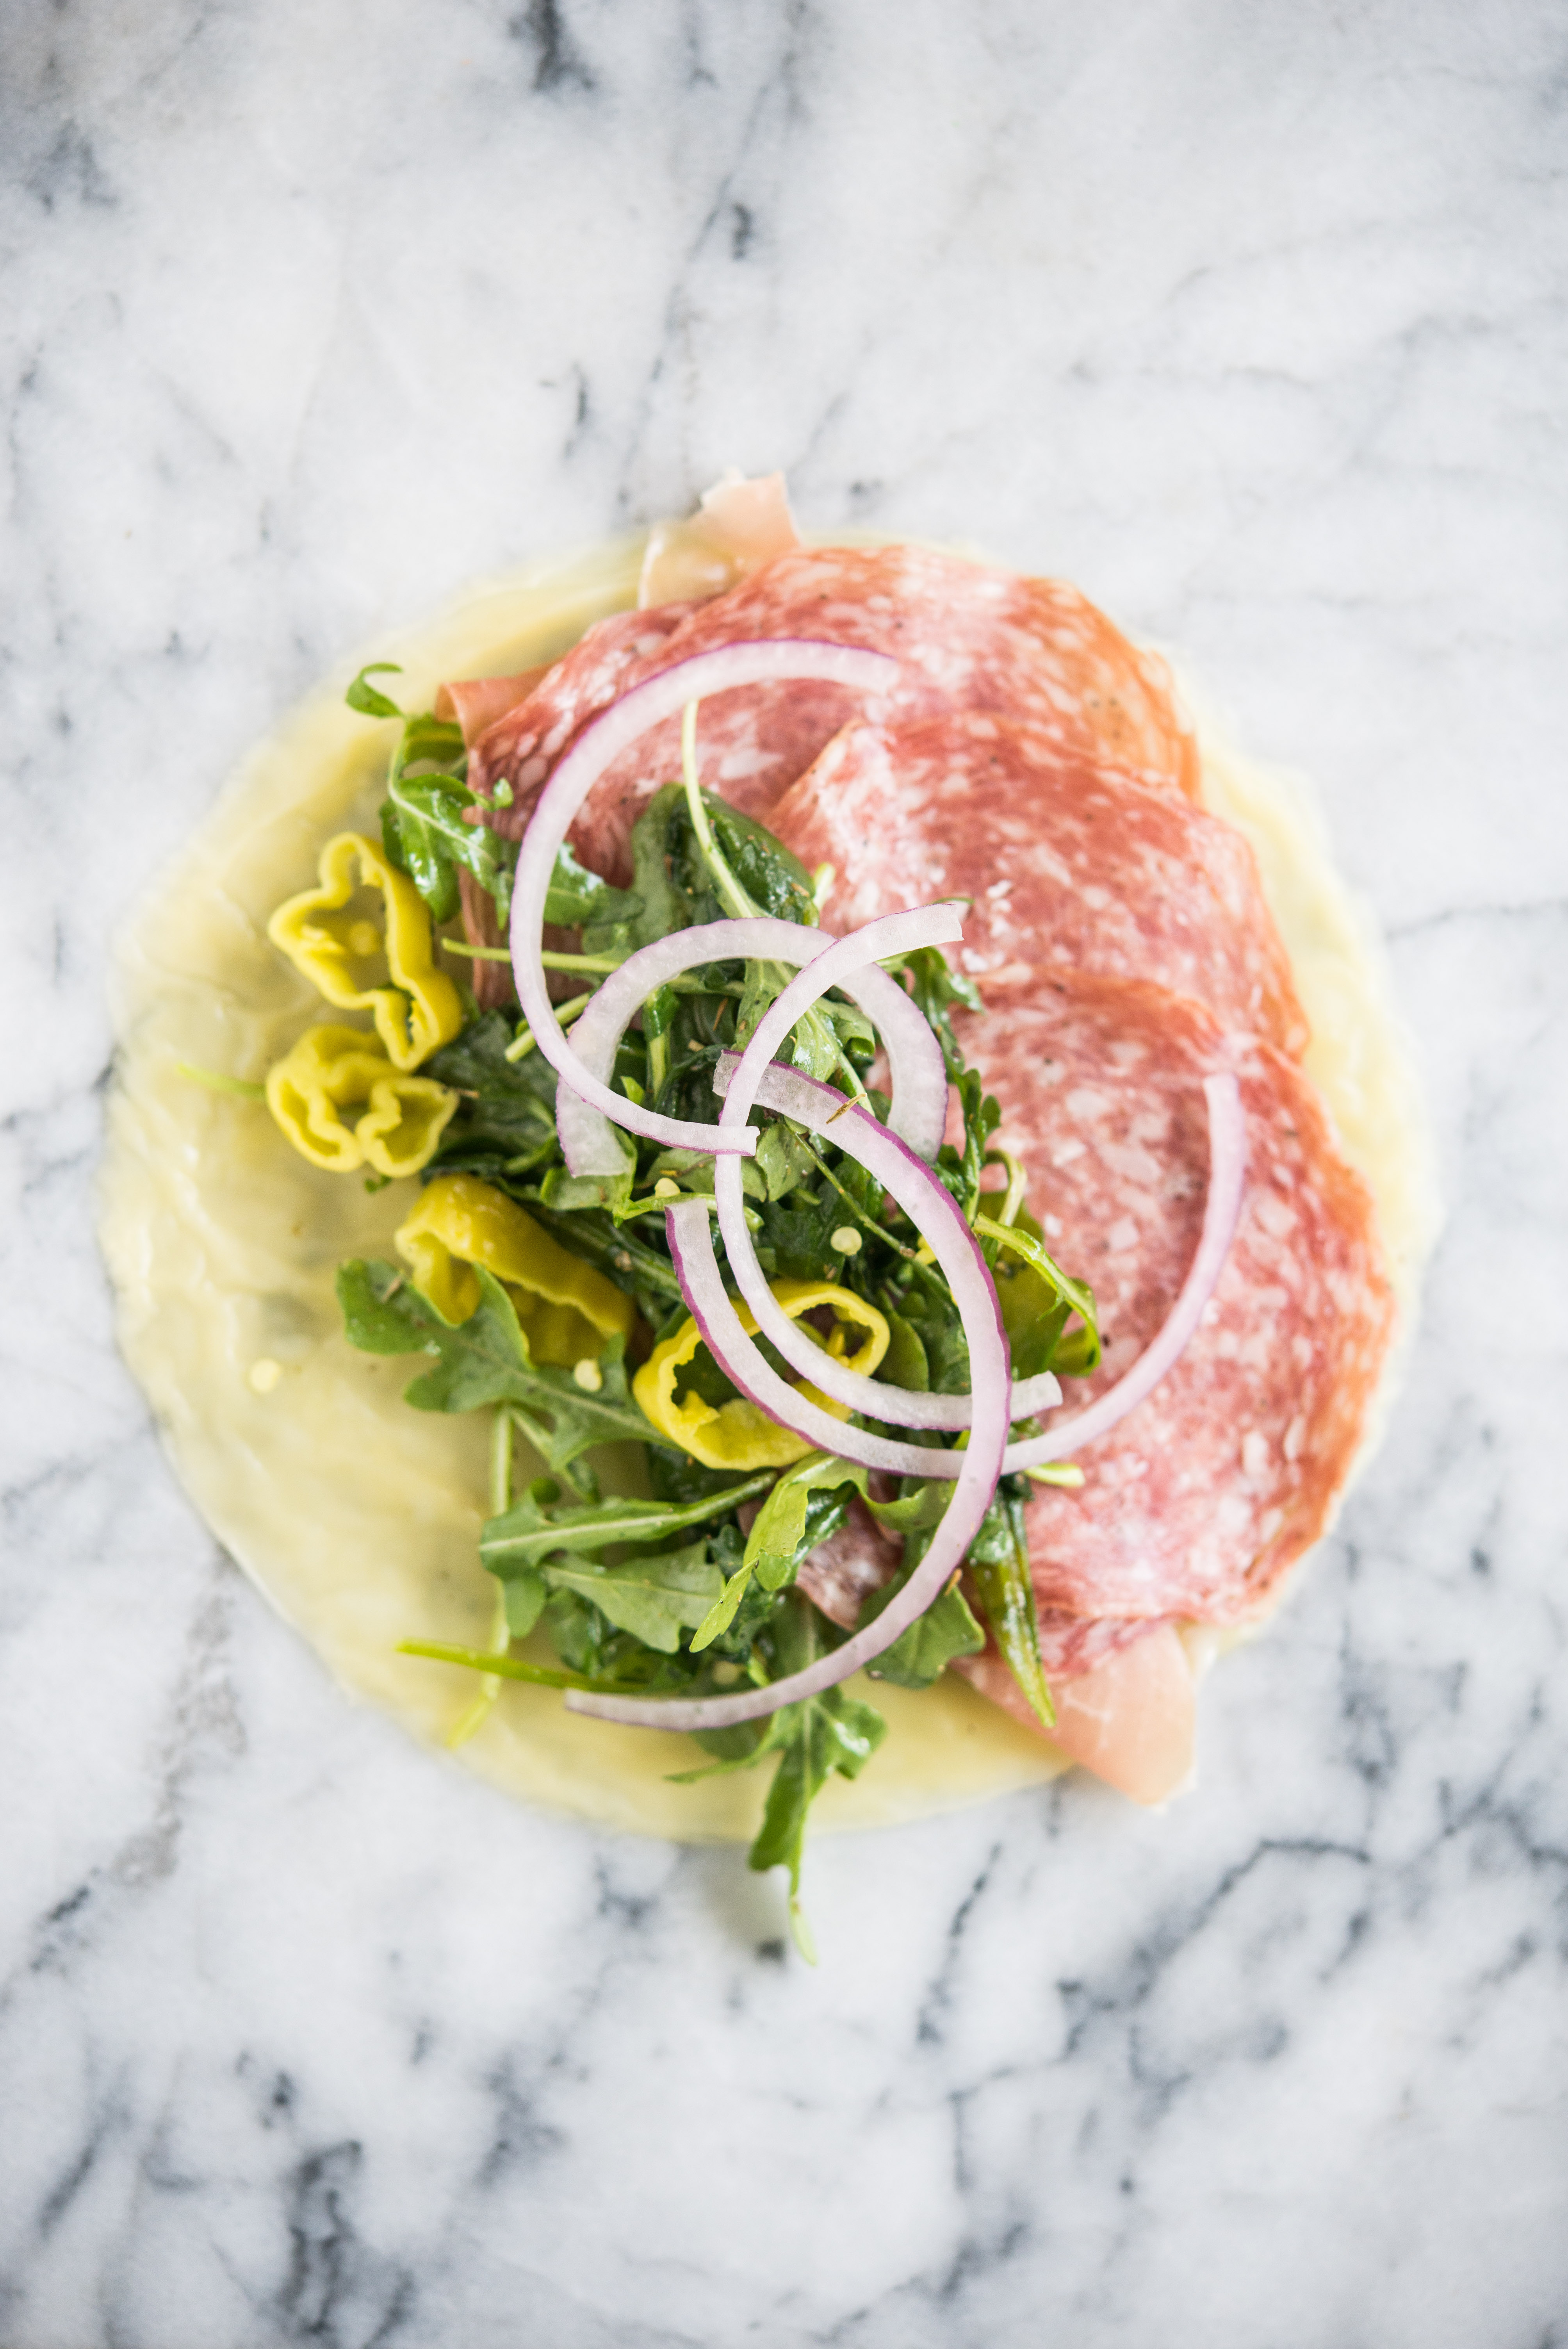 italian lunch meats, arugula, red onions, pepperonicini on a cheese wrap on a marble board